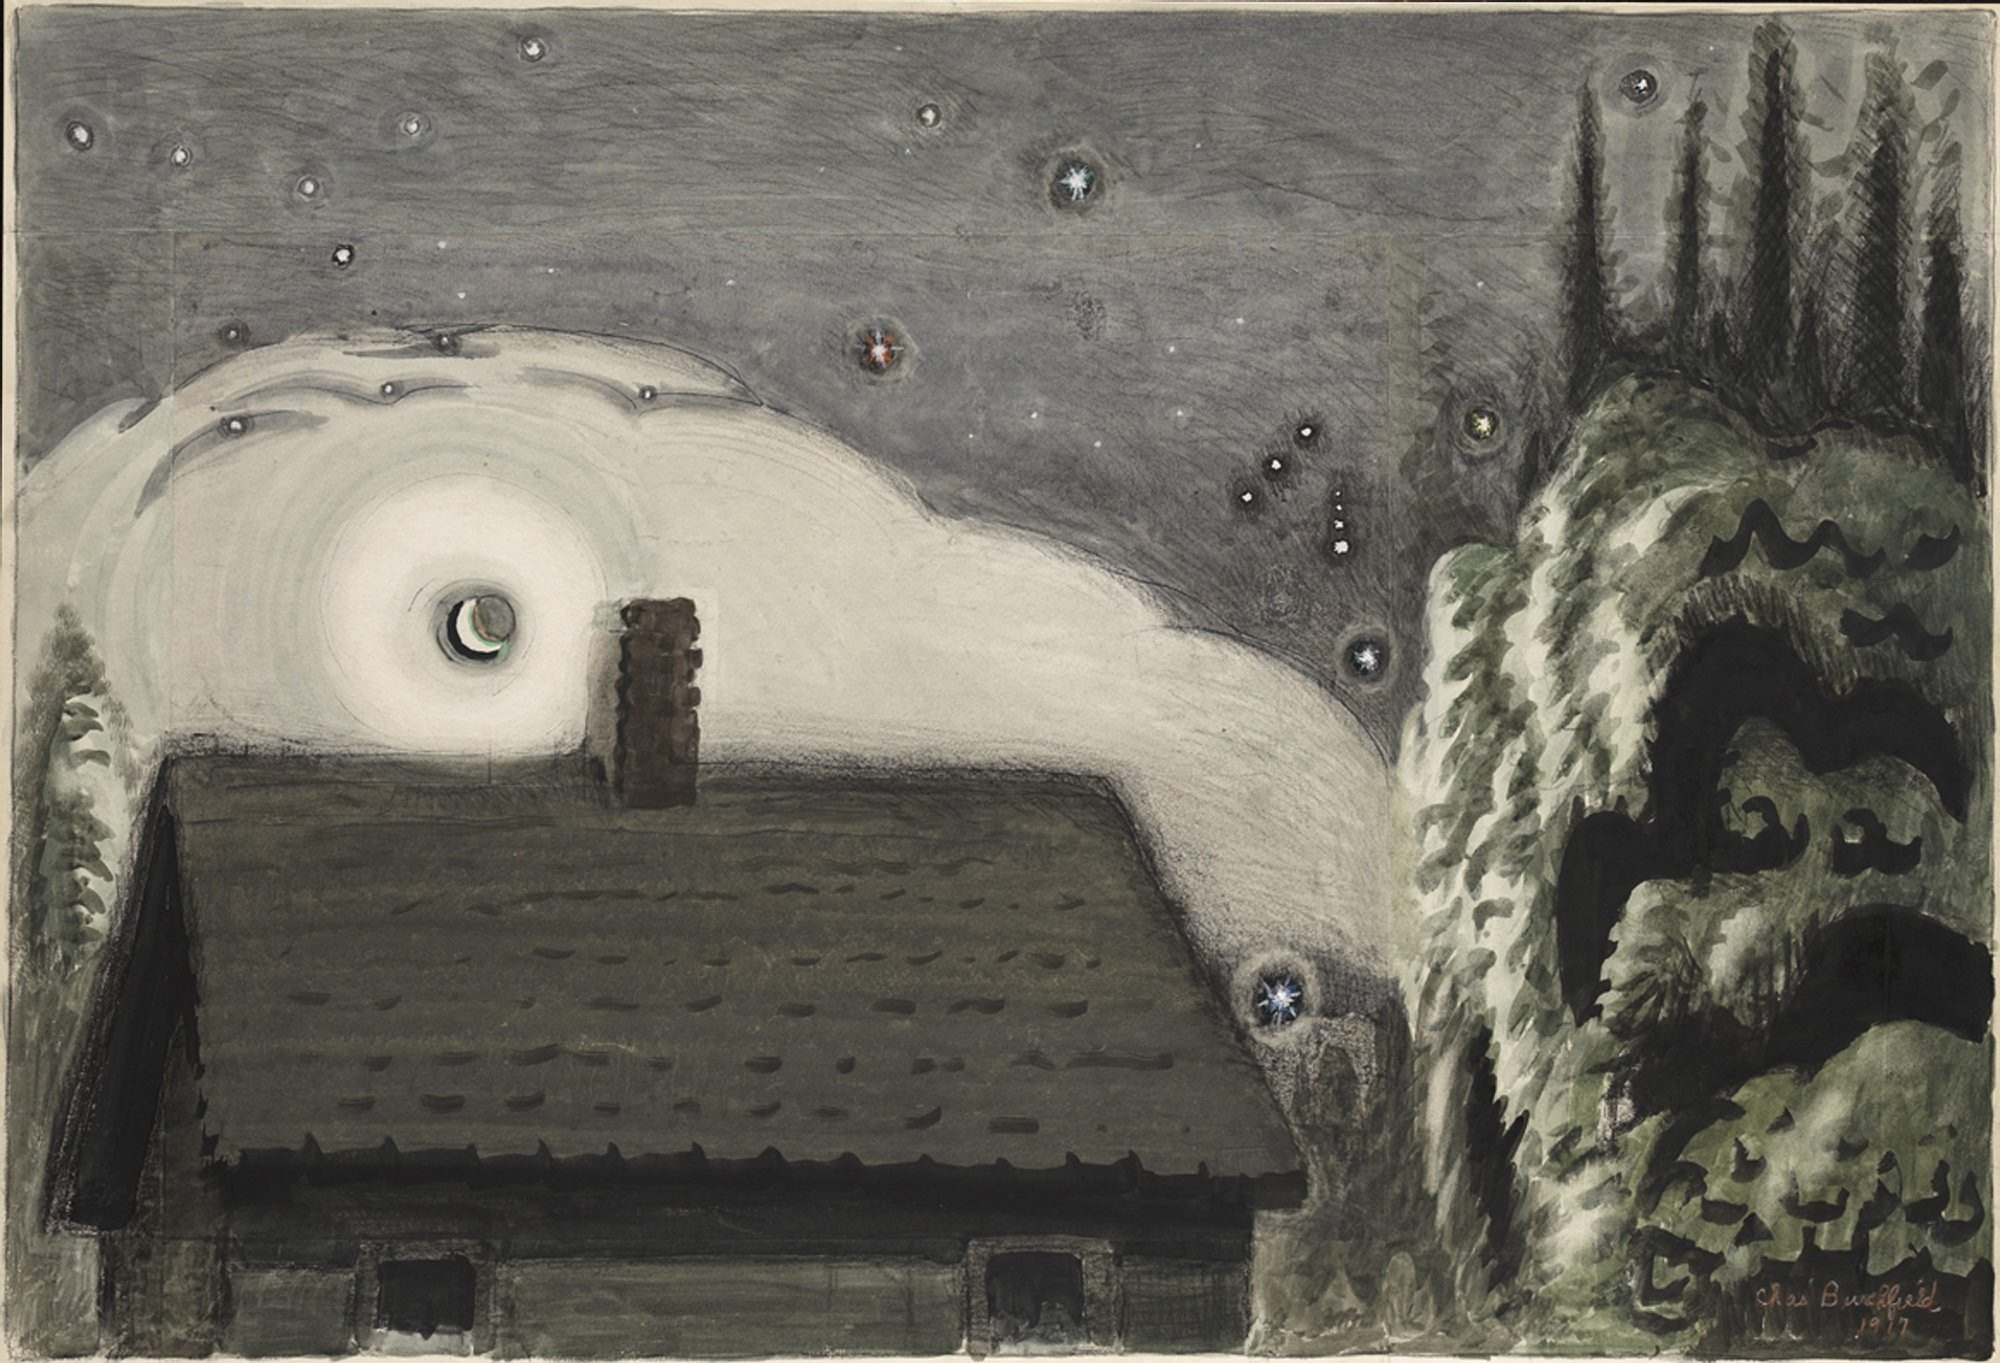 """Orion and the Moon,"" a 1917 painting by Charles Burchfield, kicks off the exhibition ""Oh My Heavens"" in the Burchfield Penney Art Center."